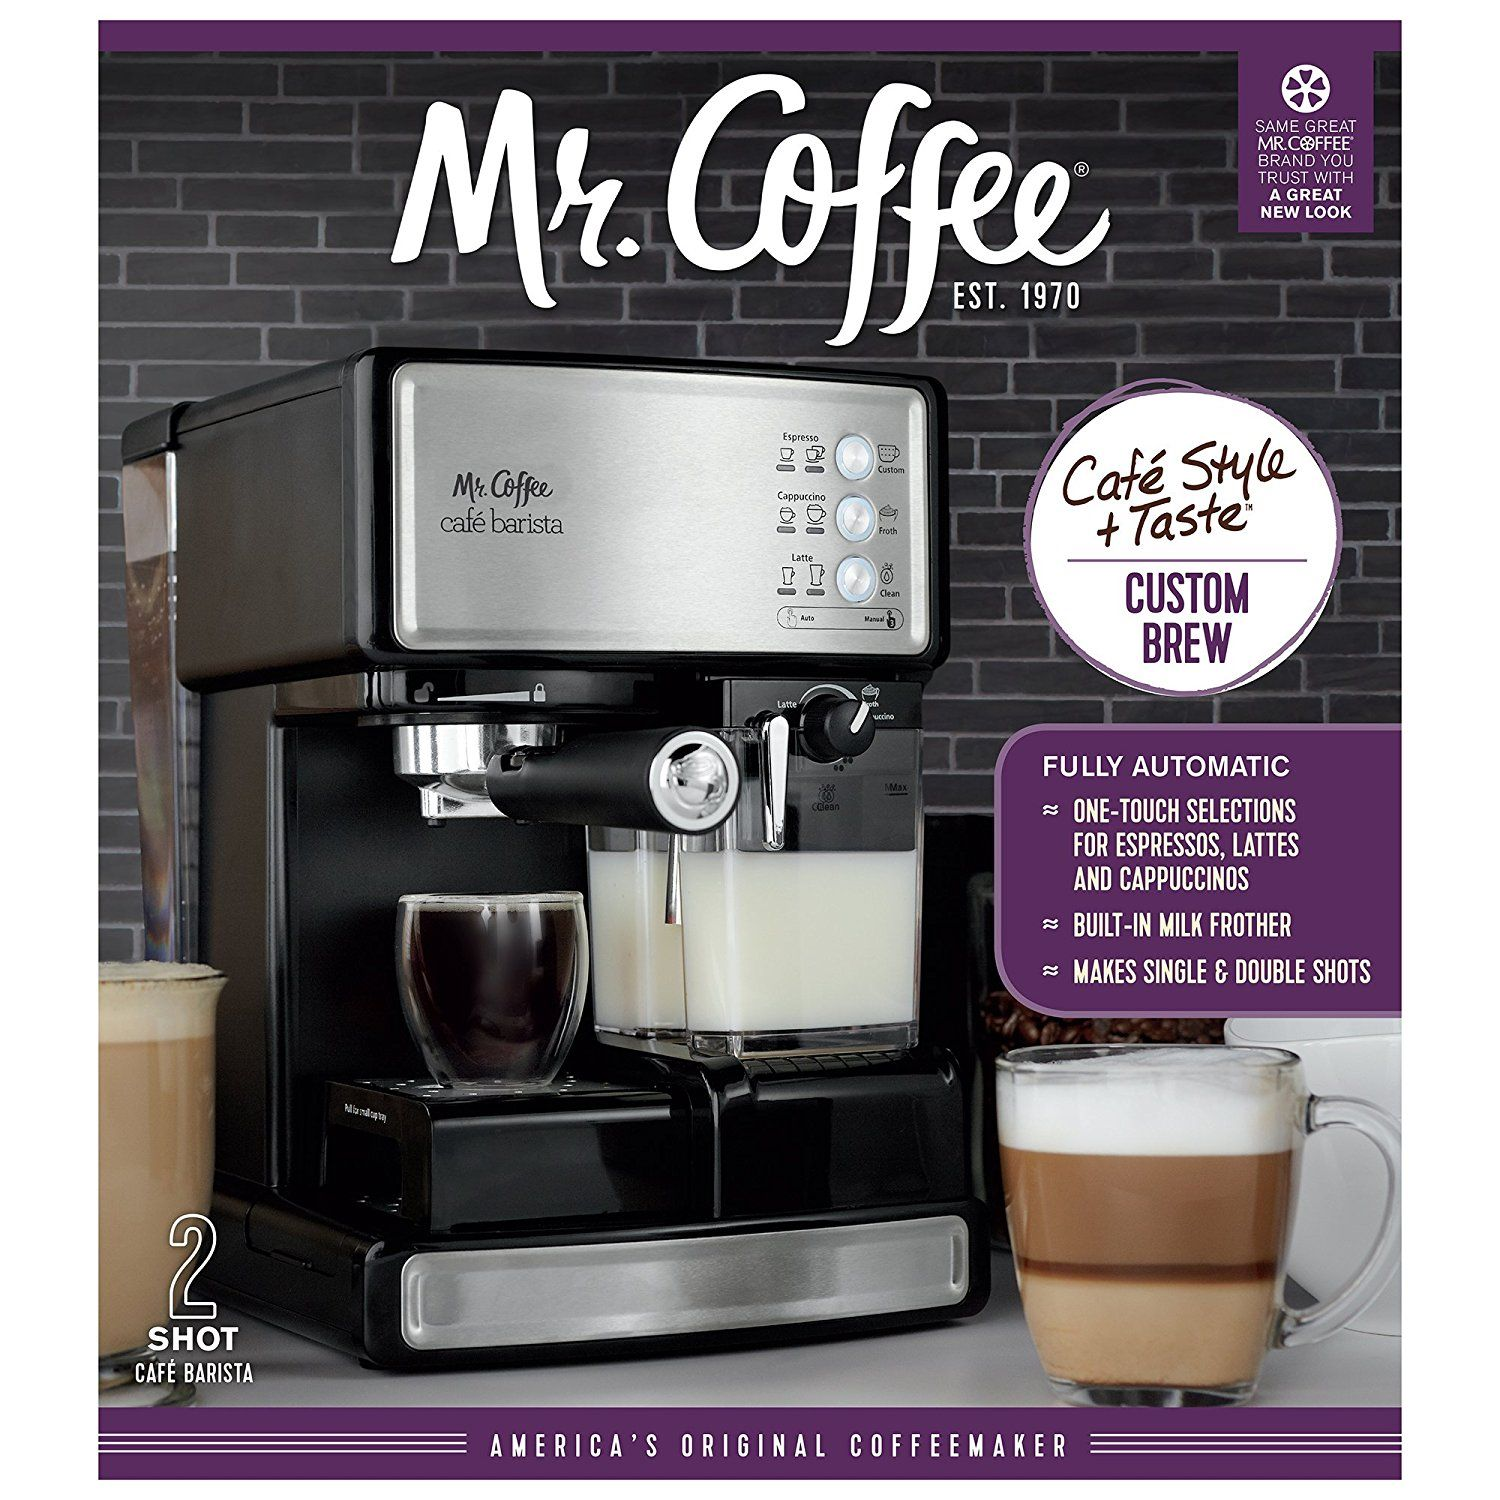 Mr Coffee Cafe Barista Review 2018